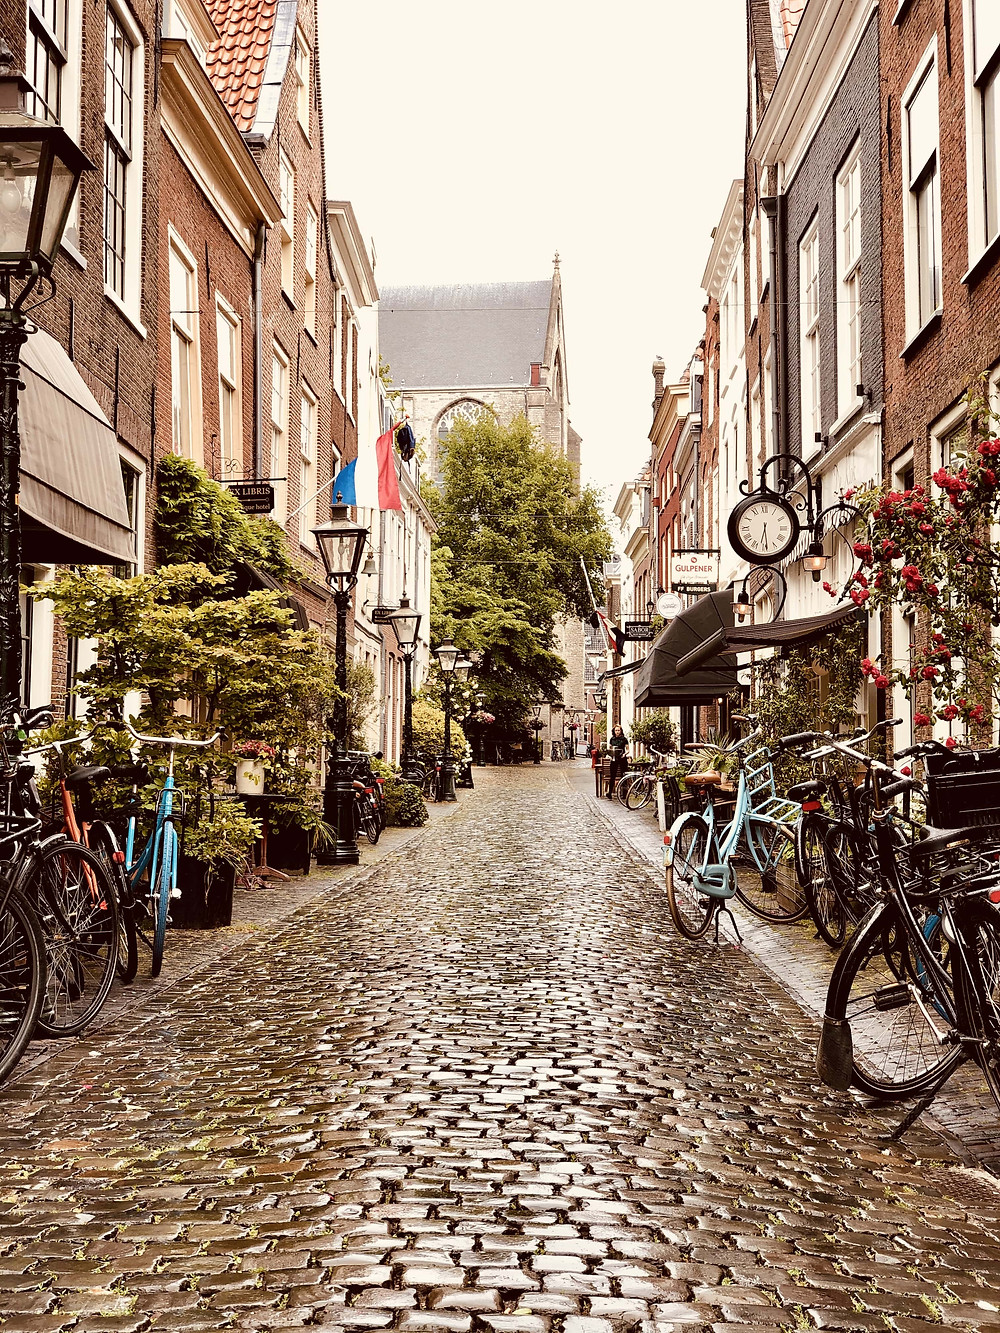 Cobble-stoned streets of Leiden Netherlands citytrip